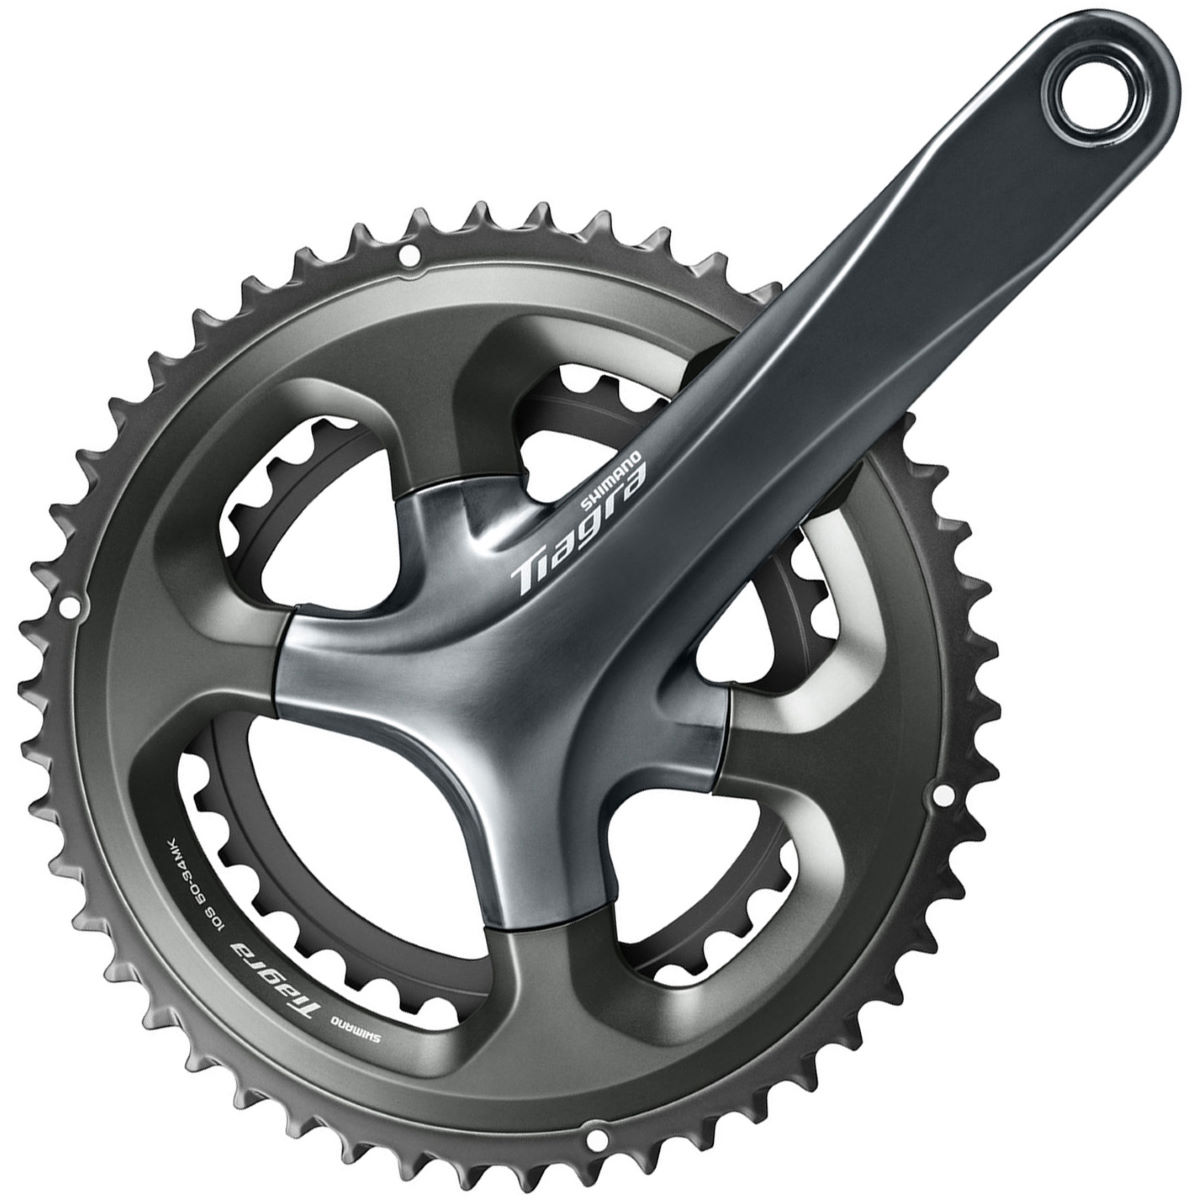 Shimano Tiagra FC4700 Chainset